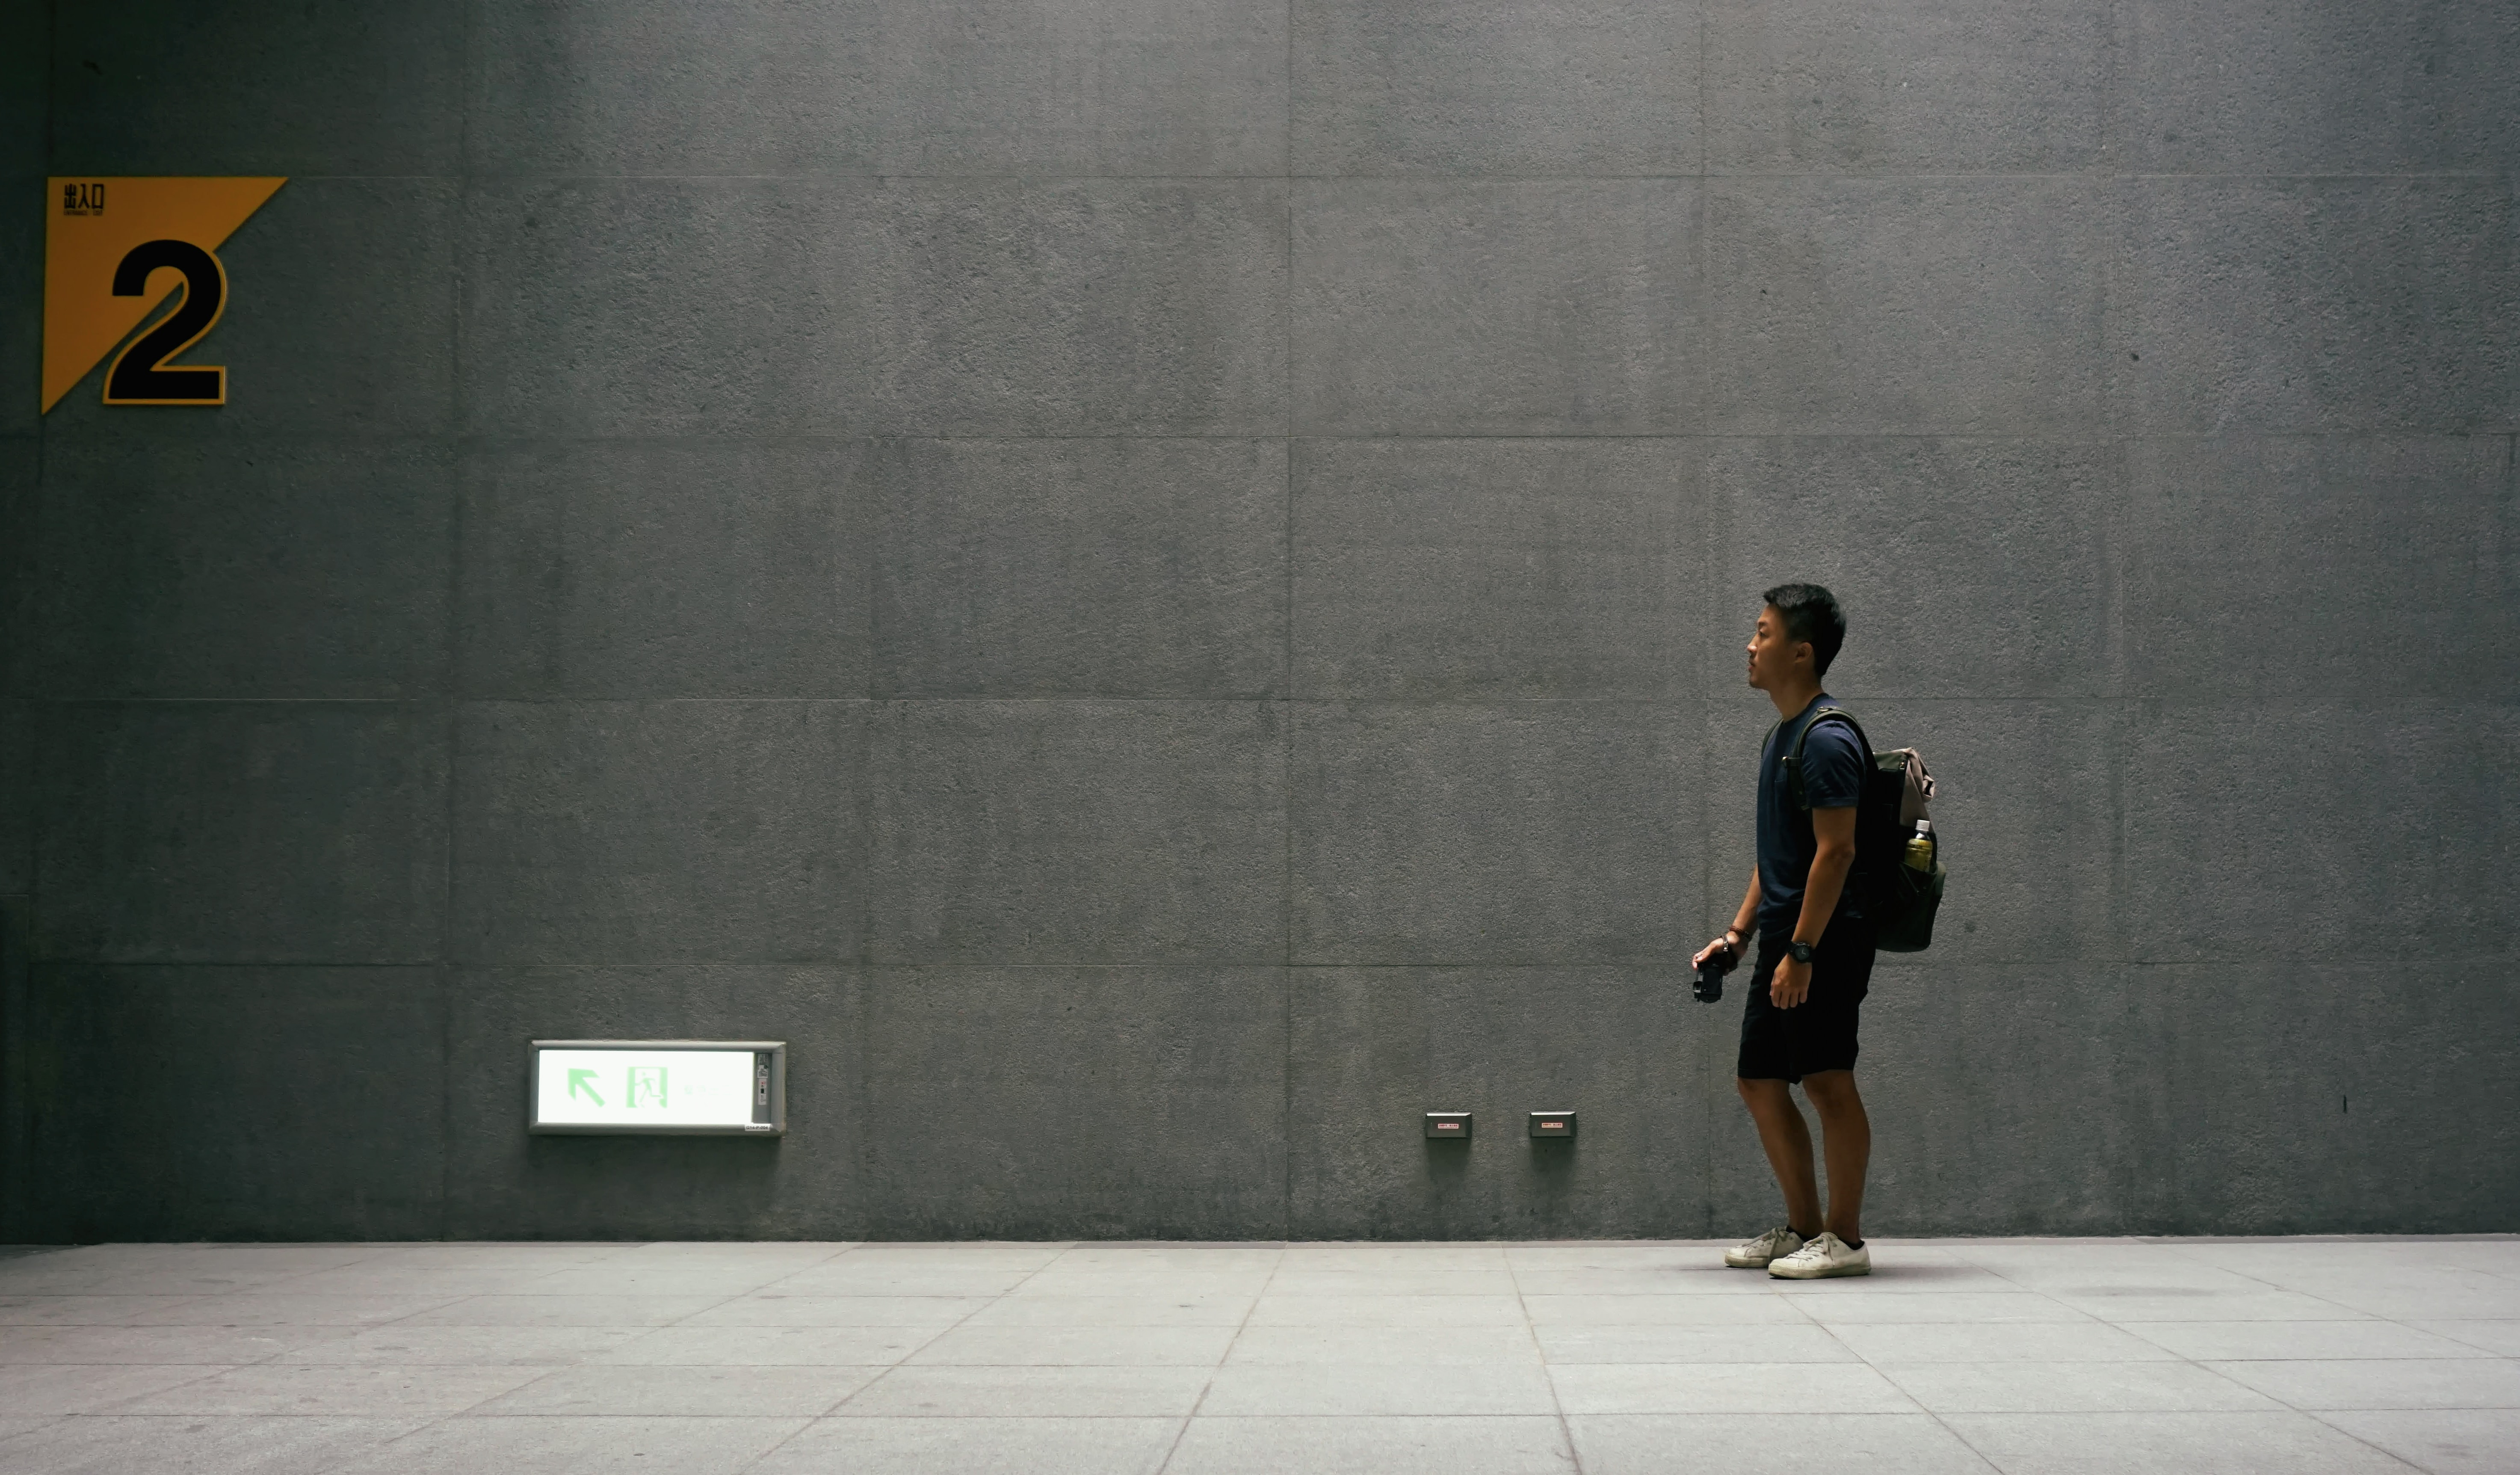 man in black top carrying backpack standing near wall